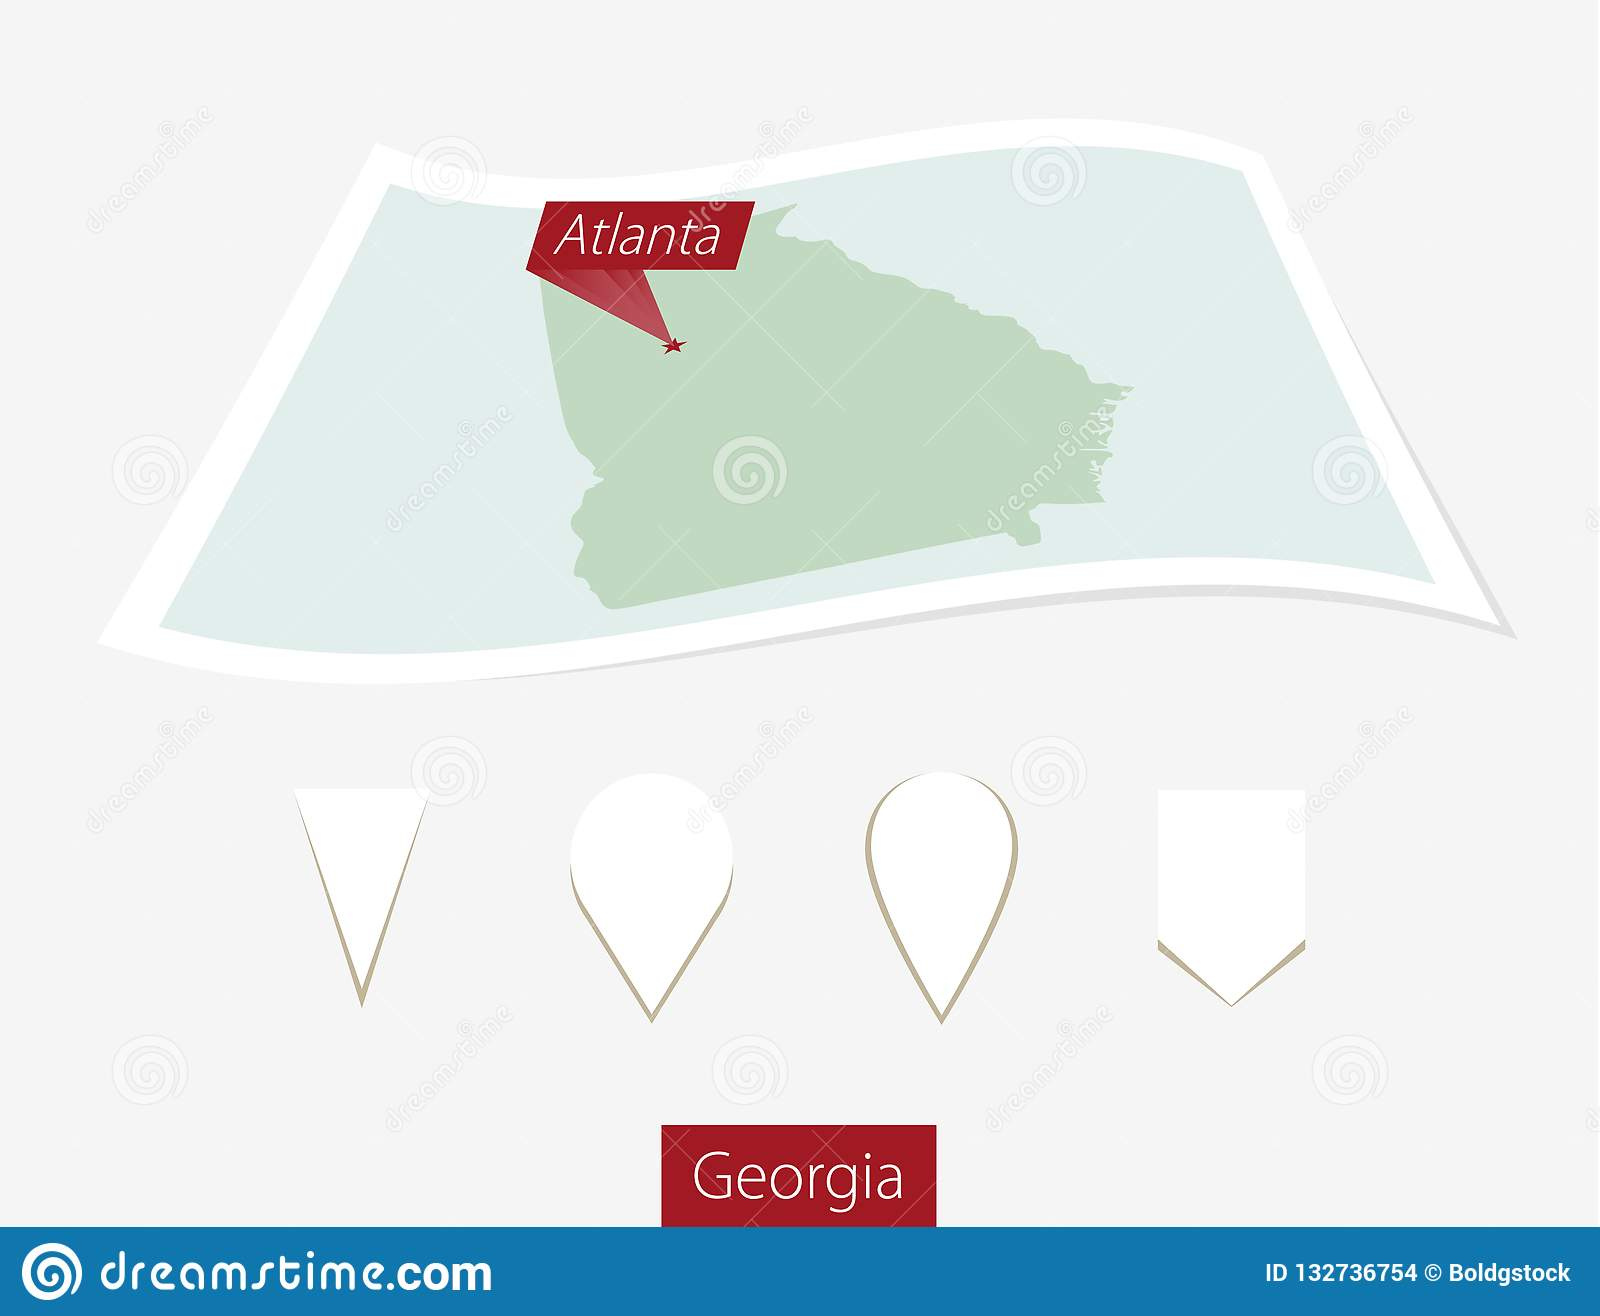 Atlanta On Map Of Georgia.Curved Paper Map Of Georgia State With Capital Atlanta On Gray B